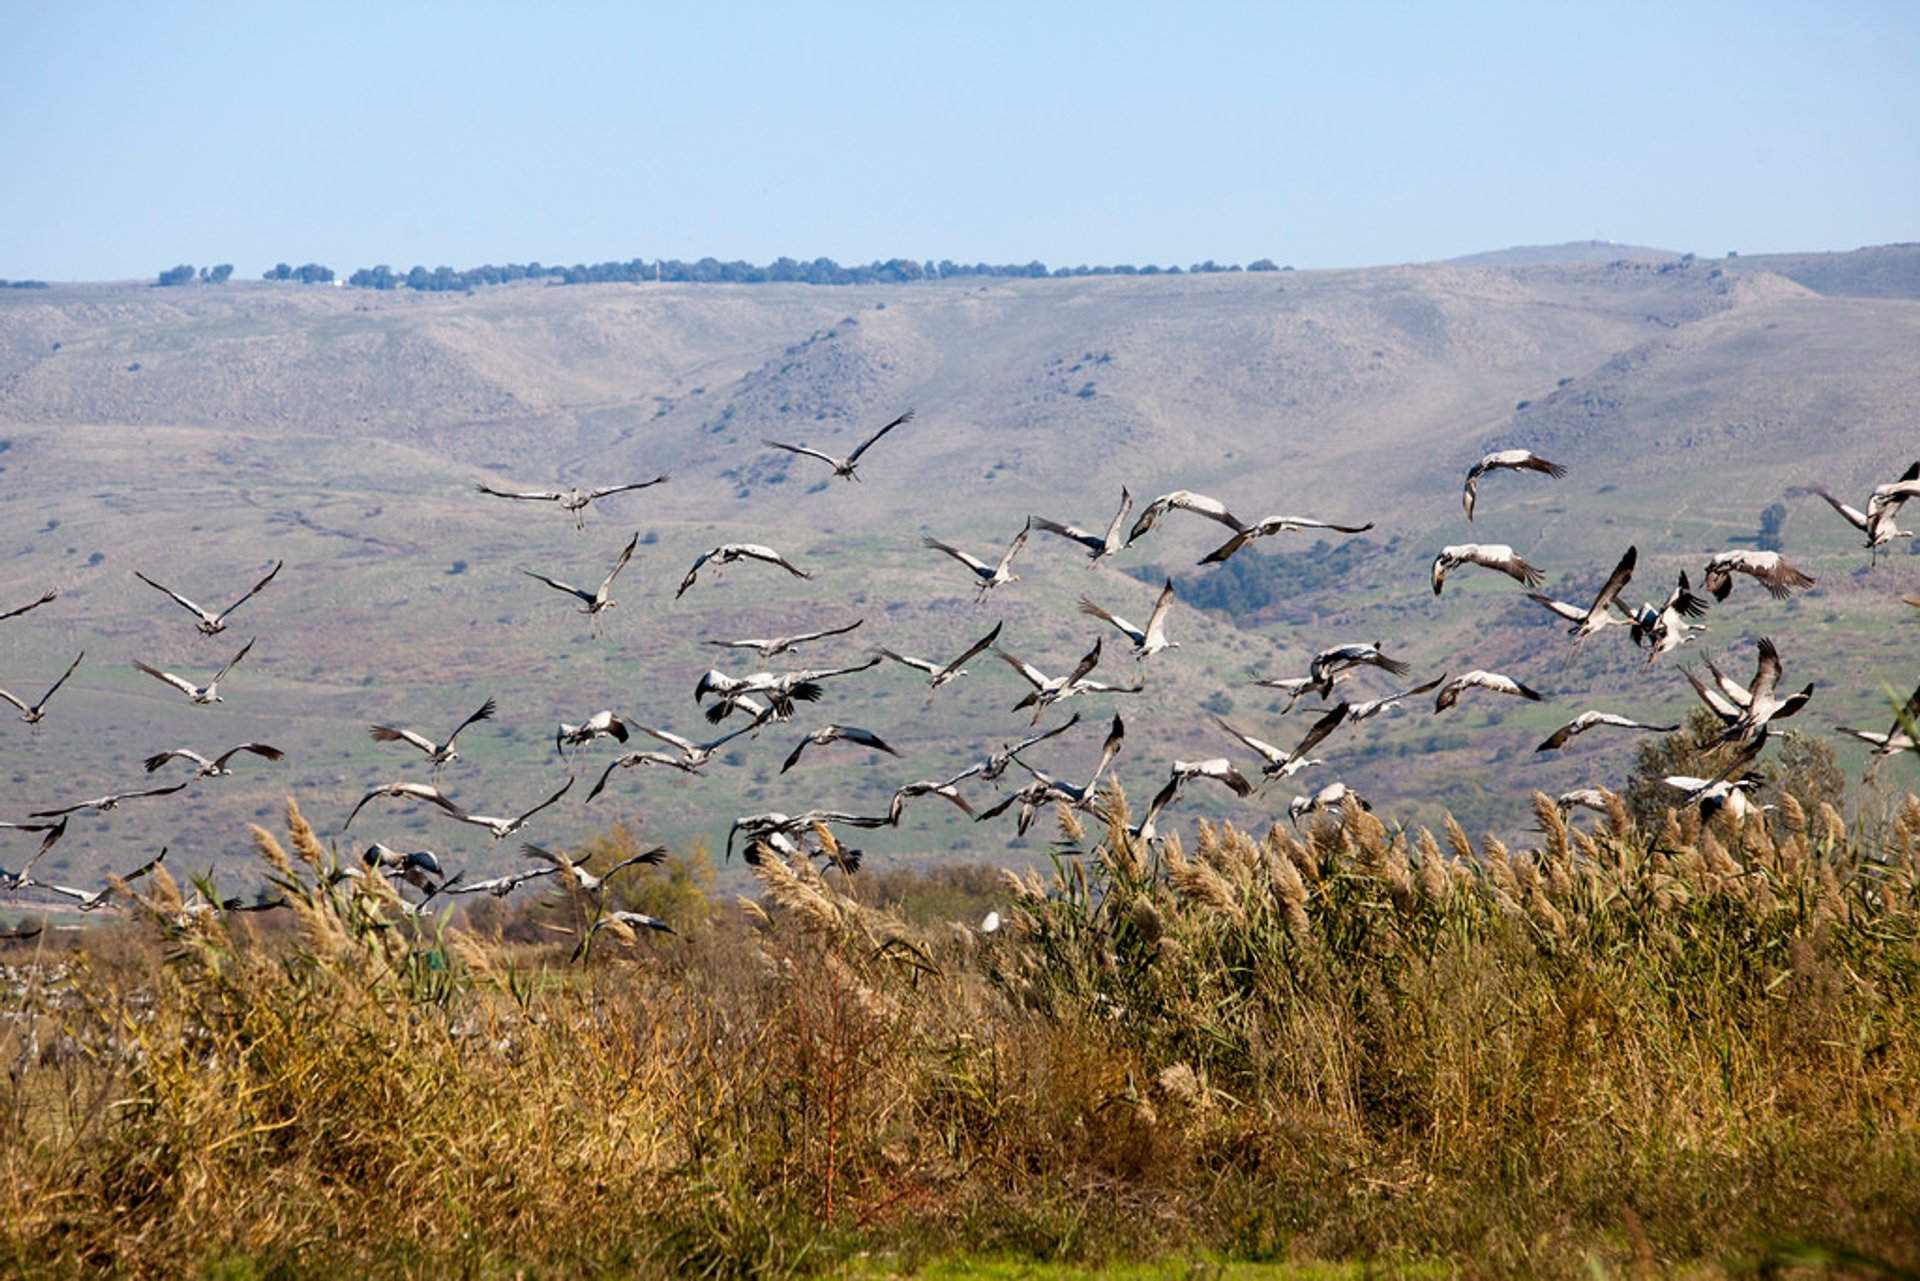 Cranes taking off in the Hula Valley National Park